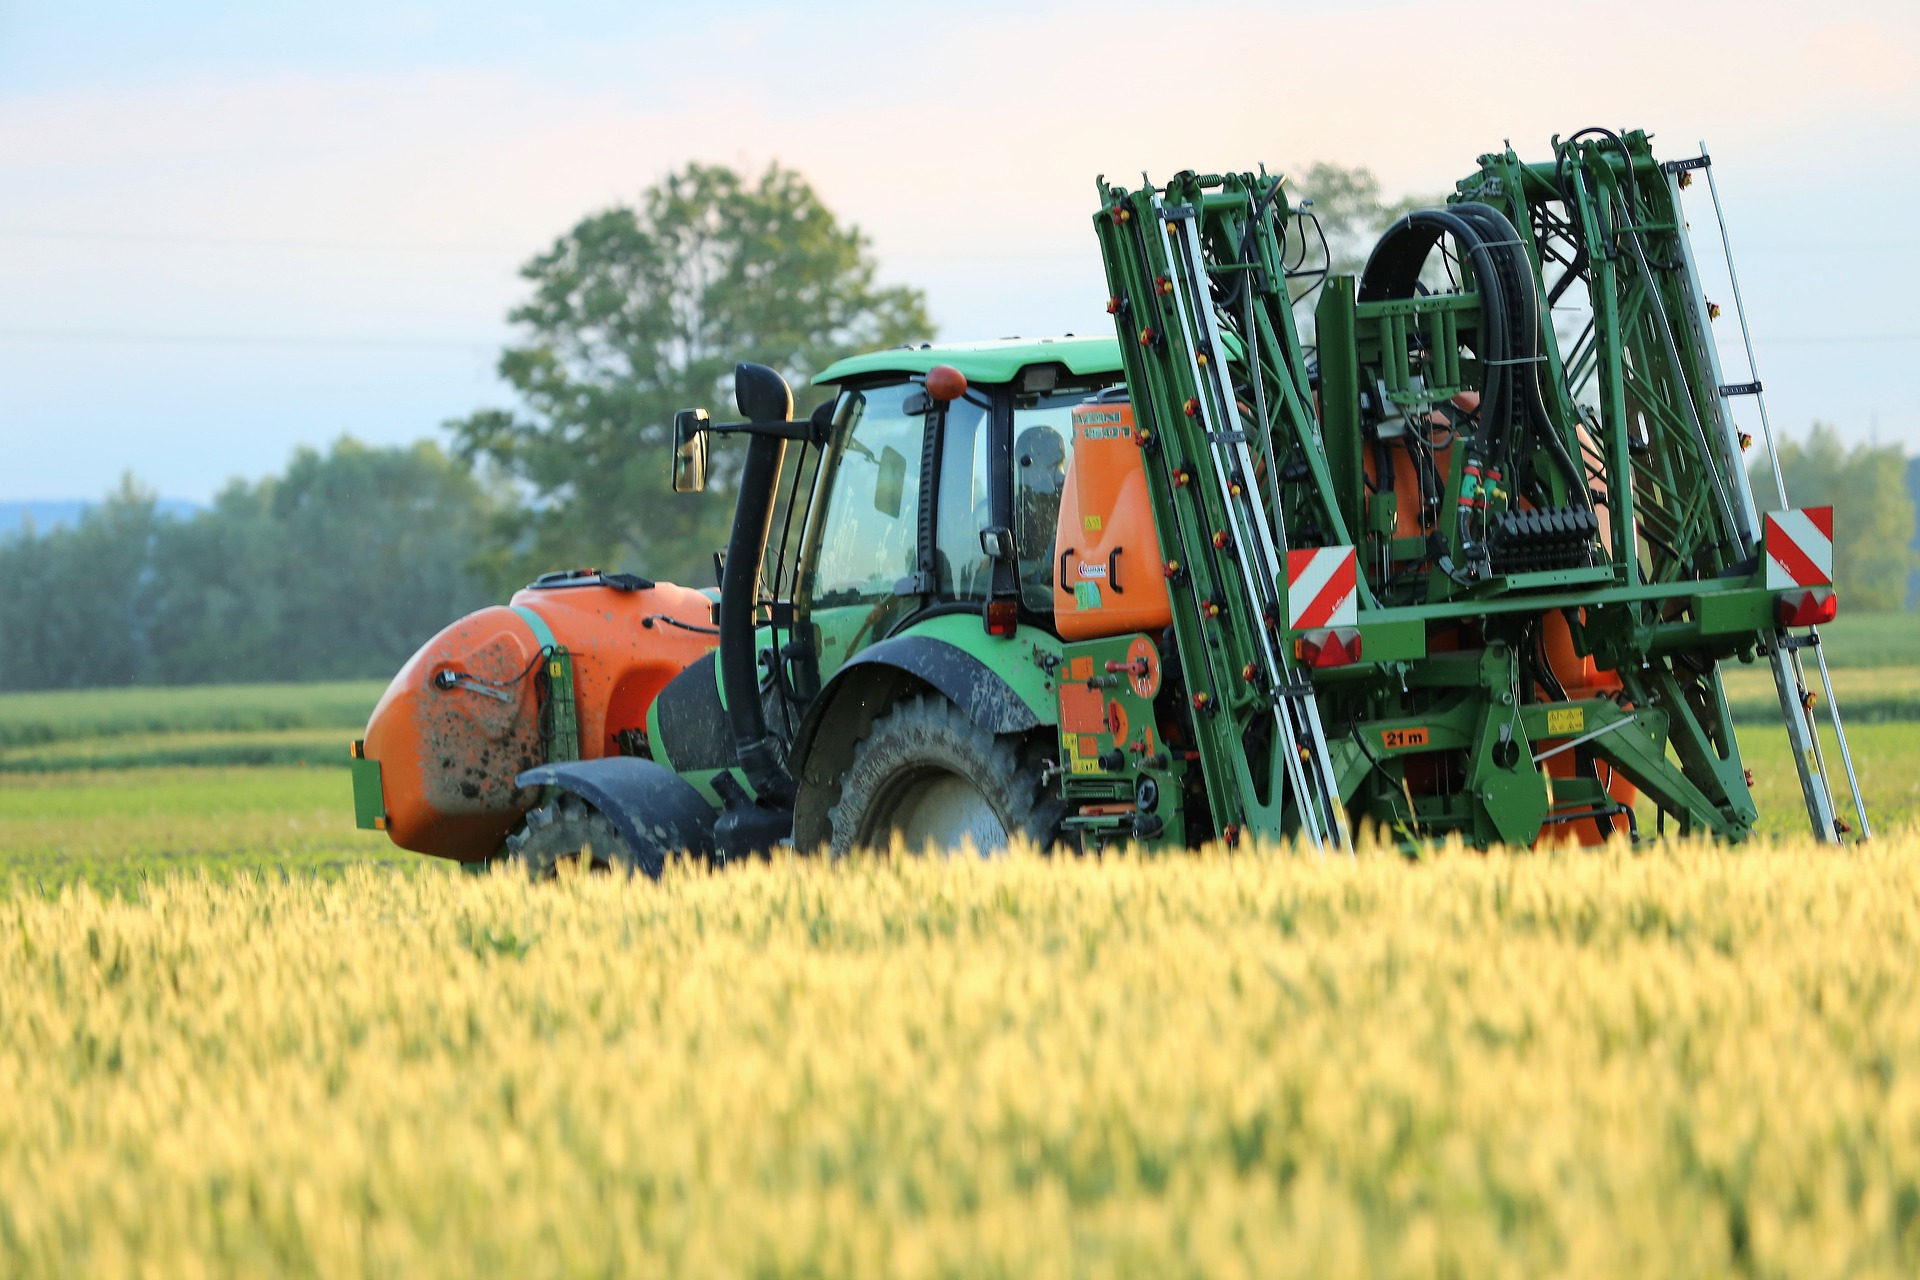 Tractor Instruments and Controls